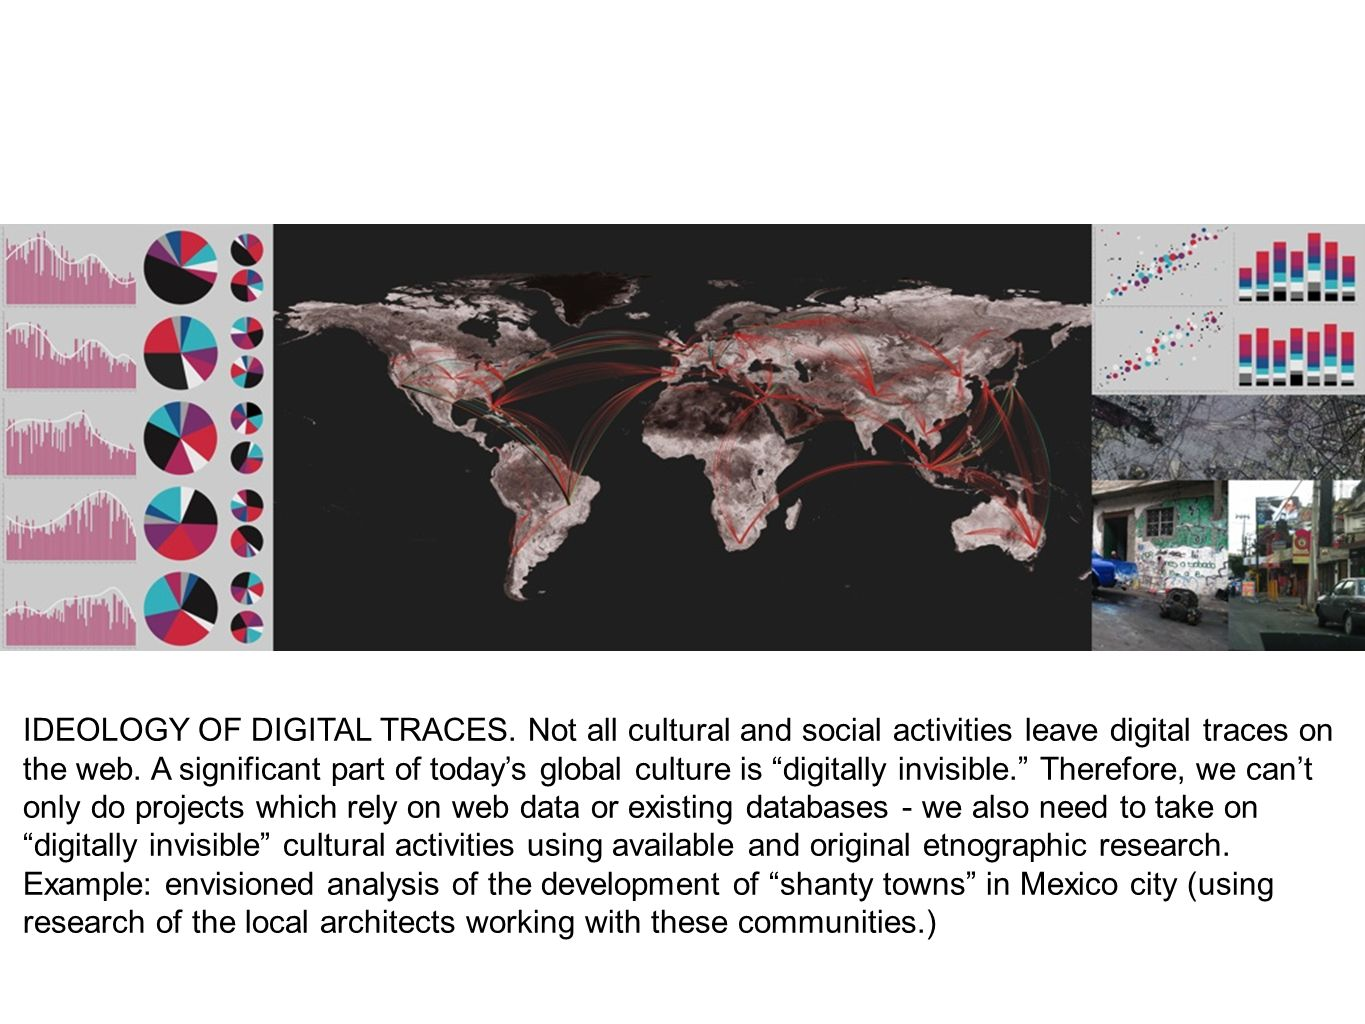 IDEOLOGY OF DIGITAL TRACES. Not all cultural and social activities leave digital traces on the web.